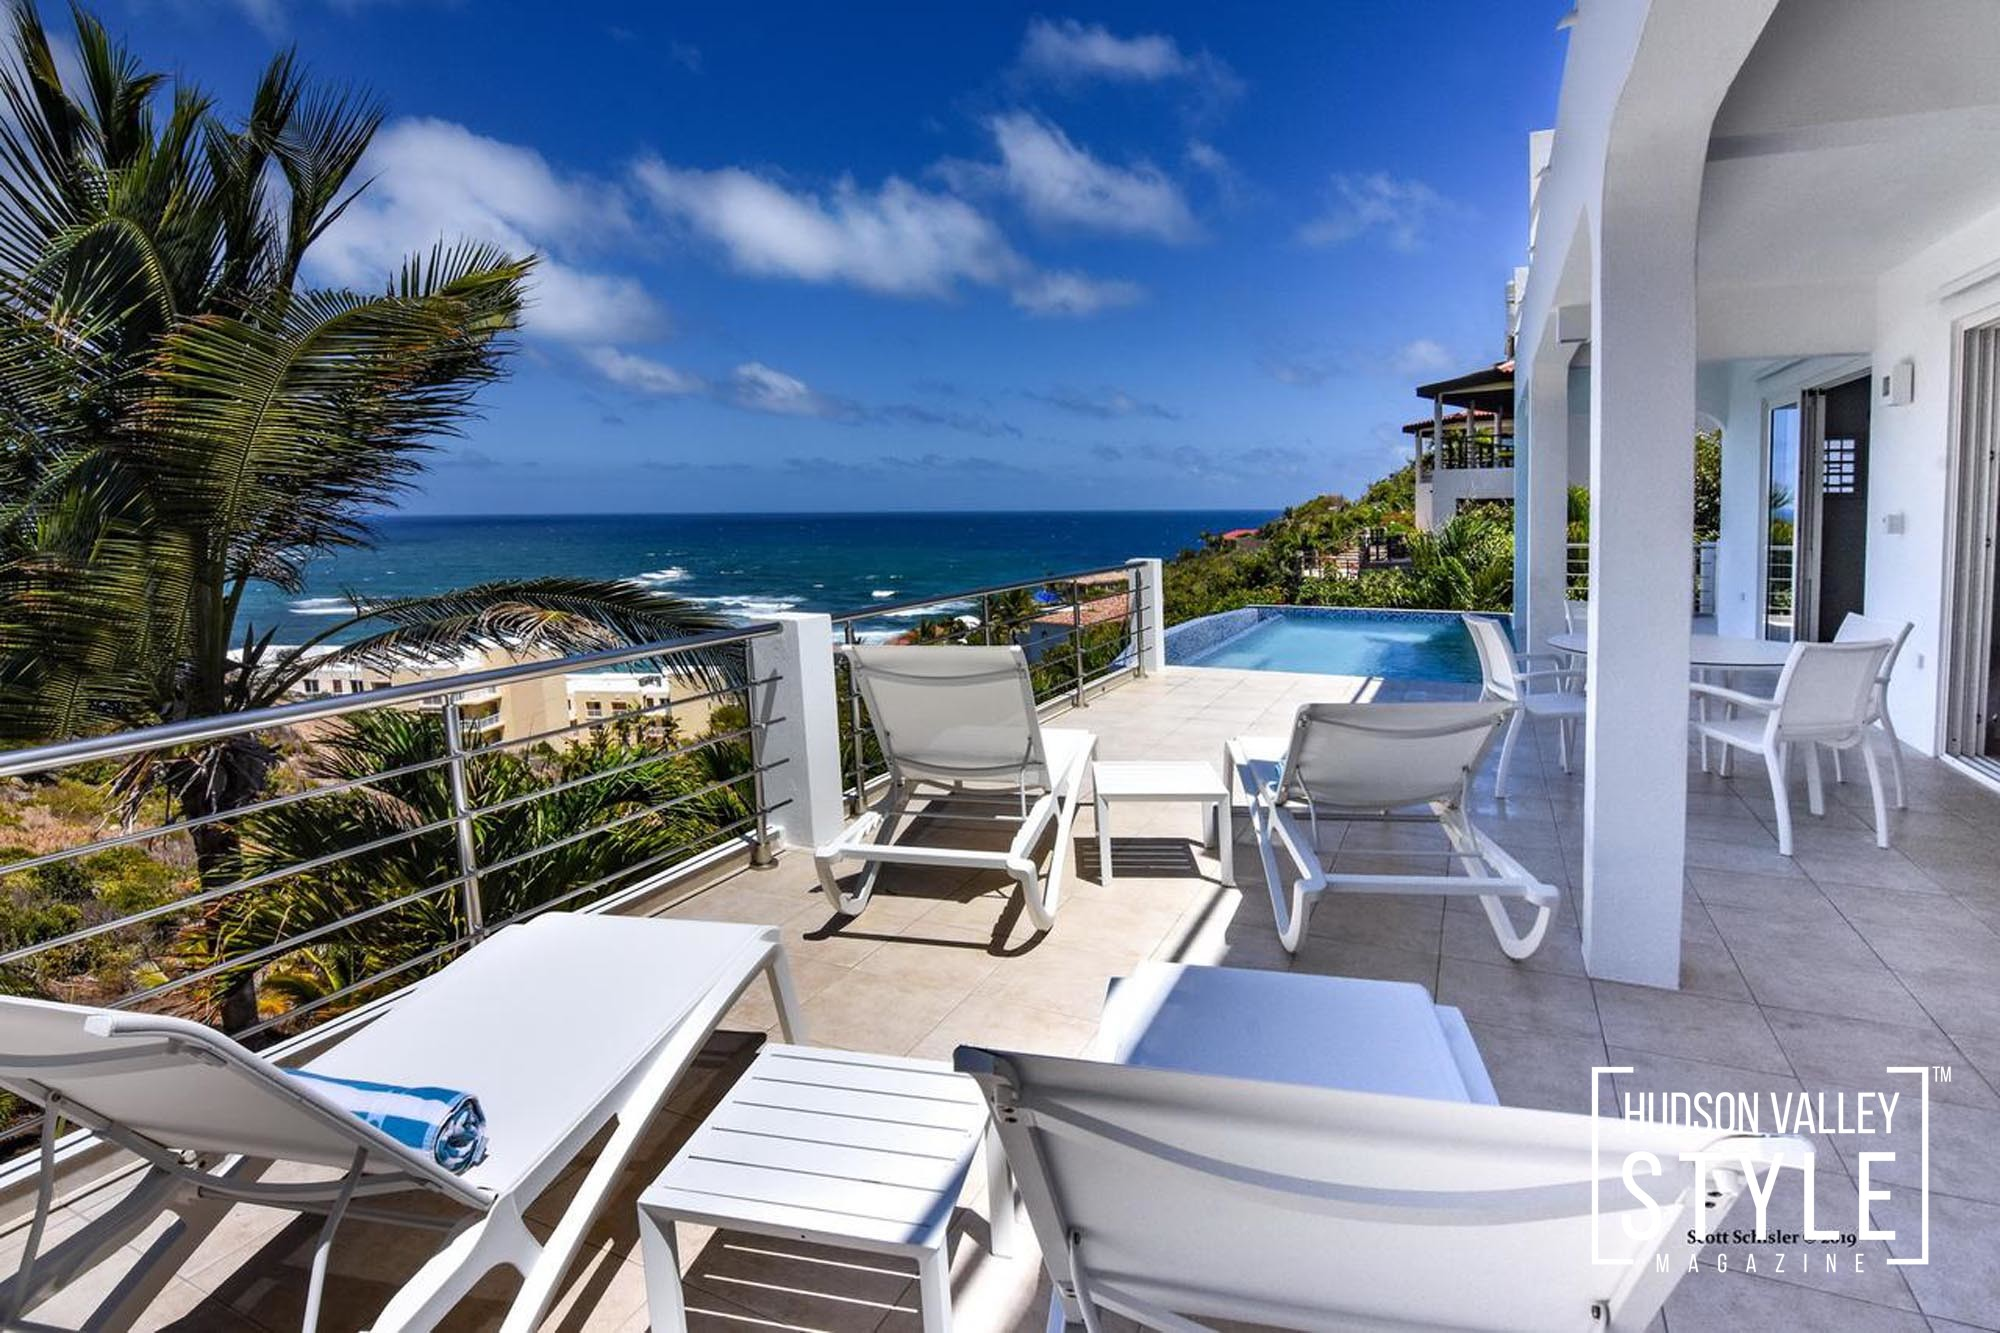 https://almaxrealty.com/for-sale-twin-palms-luxury-paradise-villa-with-studio-caribbean-real-estate/